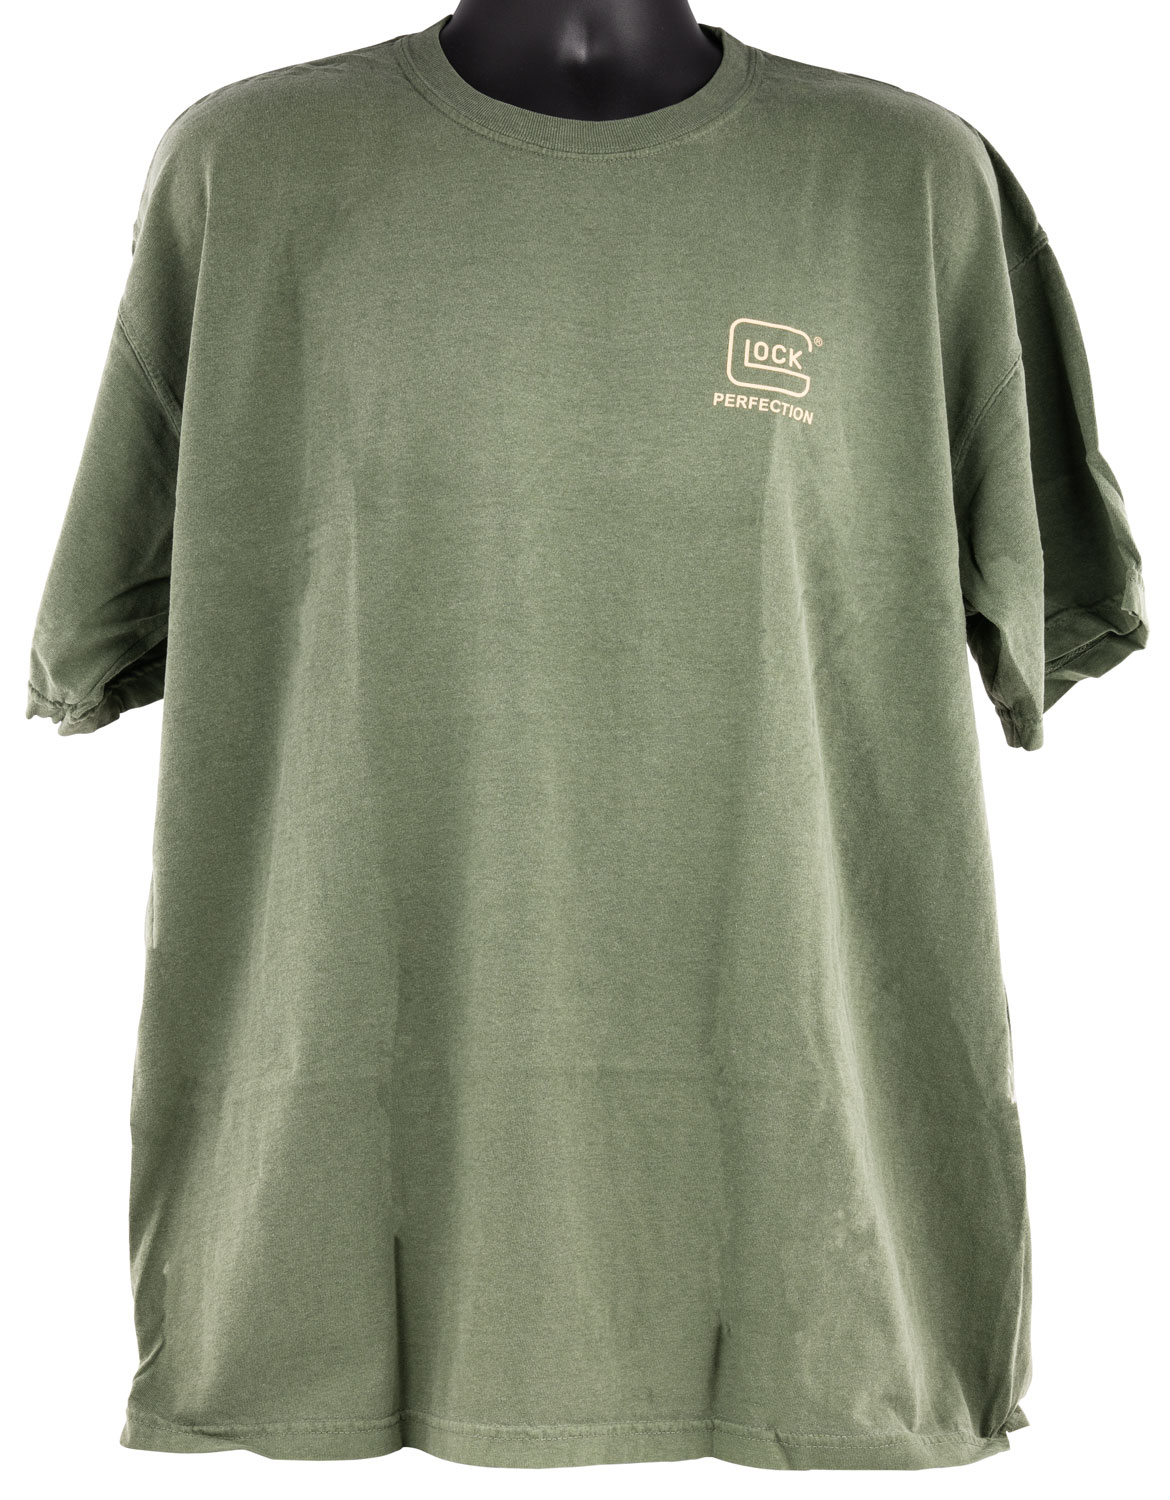 Glock AA75153 Perfection  Green 2XL Short Sleeve